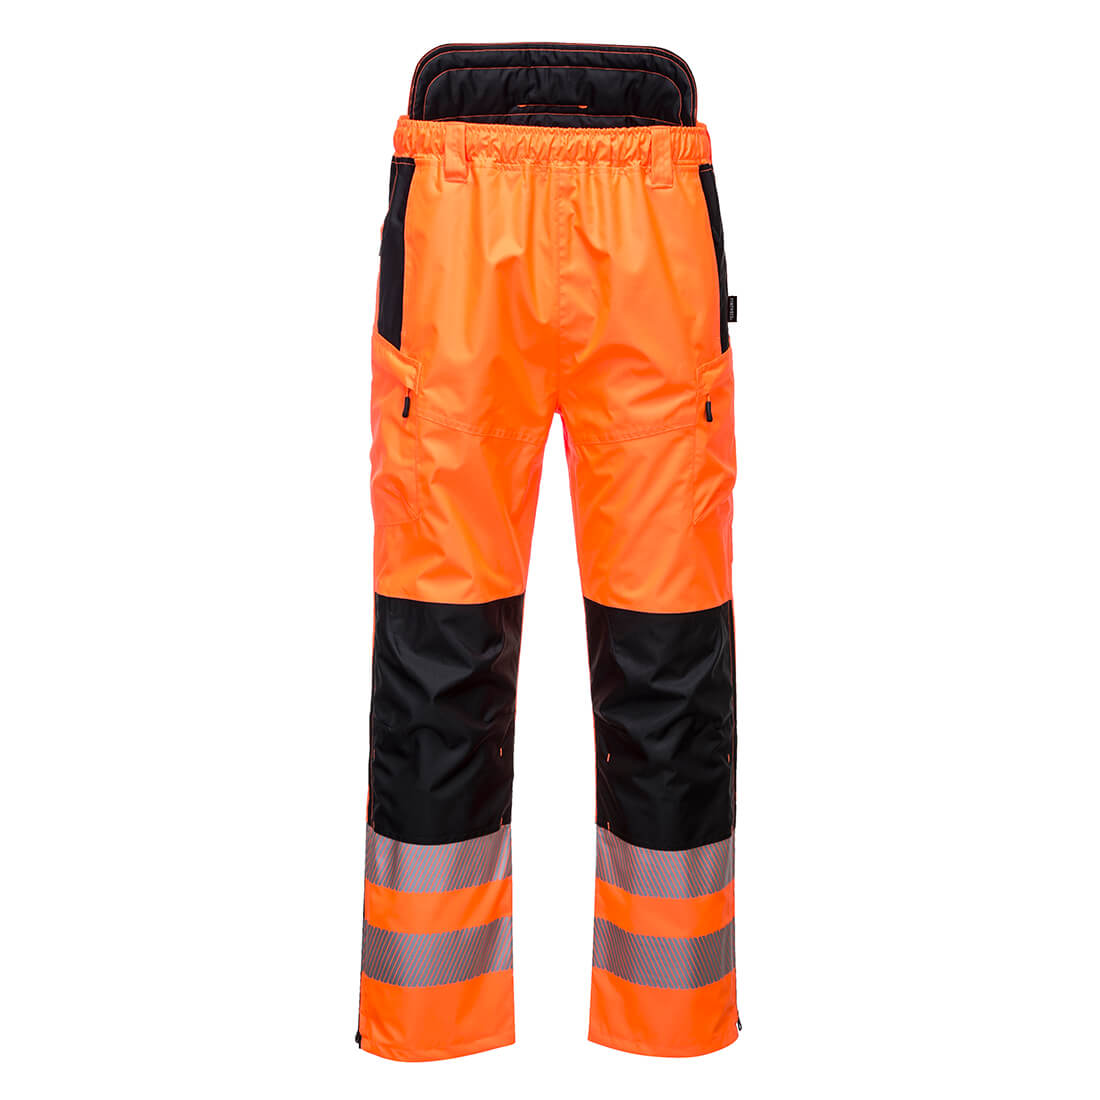 PW3 Hi-Vis Extreme Trouser Orange/Black XXL